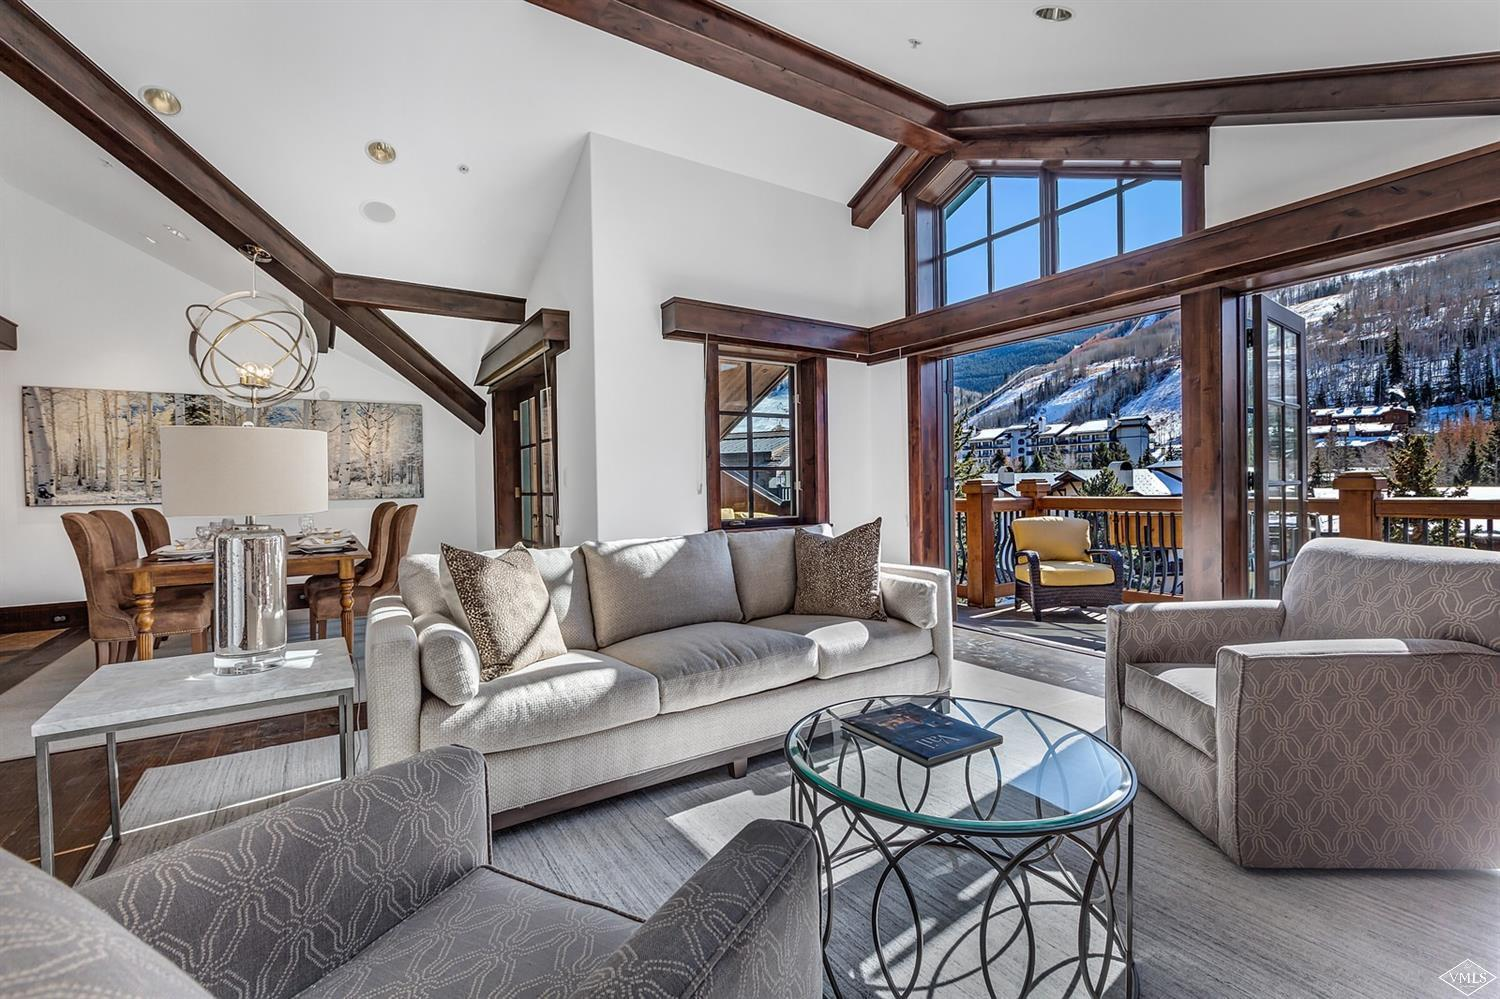 Luxury European elegant Penthouse with the best views in Vail Village! Listen to the sounds of Gore Creek from your deck, let the sun warm you while you take in the 180 degree mountain views, 4 Bedroom + Media Room, 2 decks, 2 Gas Fireplaces, Dual Master Marble Bath, Walk-in closets with extra storage, Direct Elevator access, Central Air, Crestron electronics, Heated floors, Parking/Storage, Security, Valet service,  Concierge attention, Infinity Pool, 2 Hot Tubs, bike and ski storage, use of the Sonnenalp Hotel Spa, Pool, Room service from the Sonnenalp restaurants,  Golf and Fitness club.   This Penthouse is the Diamond Jewel in the heart of Vail Village in an unrivaled location with views up and down Gore Creek.  Only 10 whole owners can enjoy the luxury and attention at One Willow Bridge Road.  Only one can call the largest penthouse jewel their home in Vail.